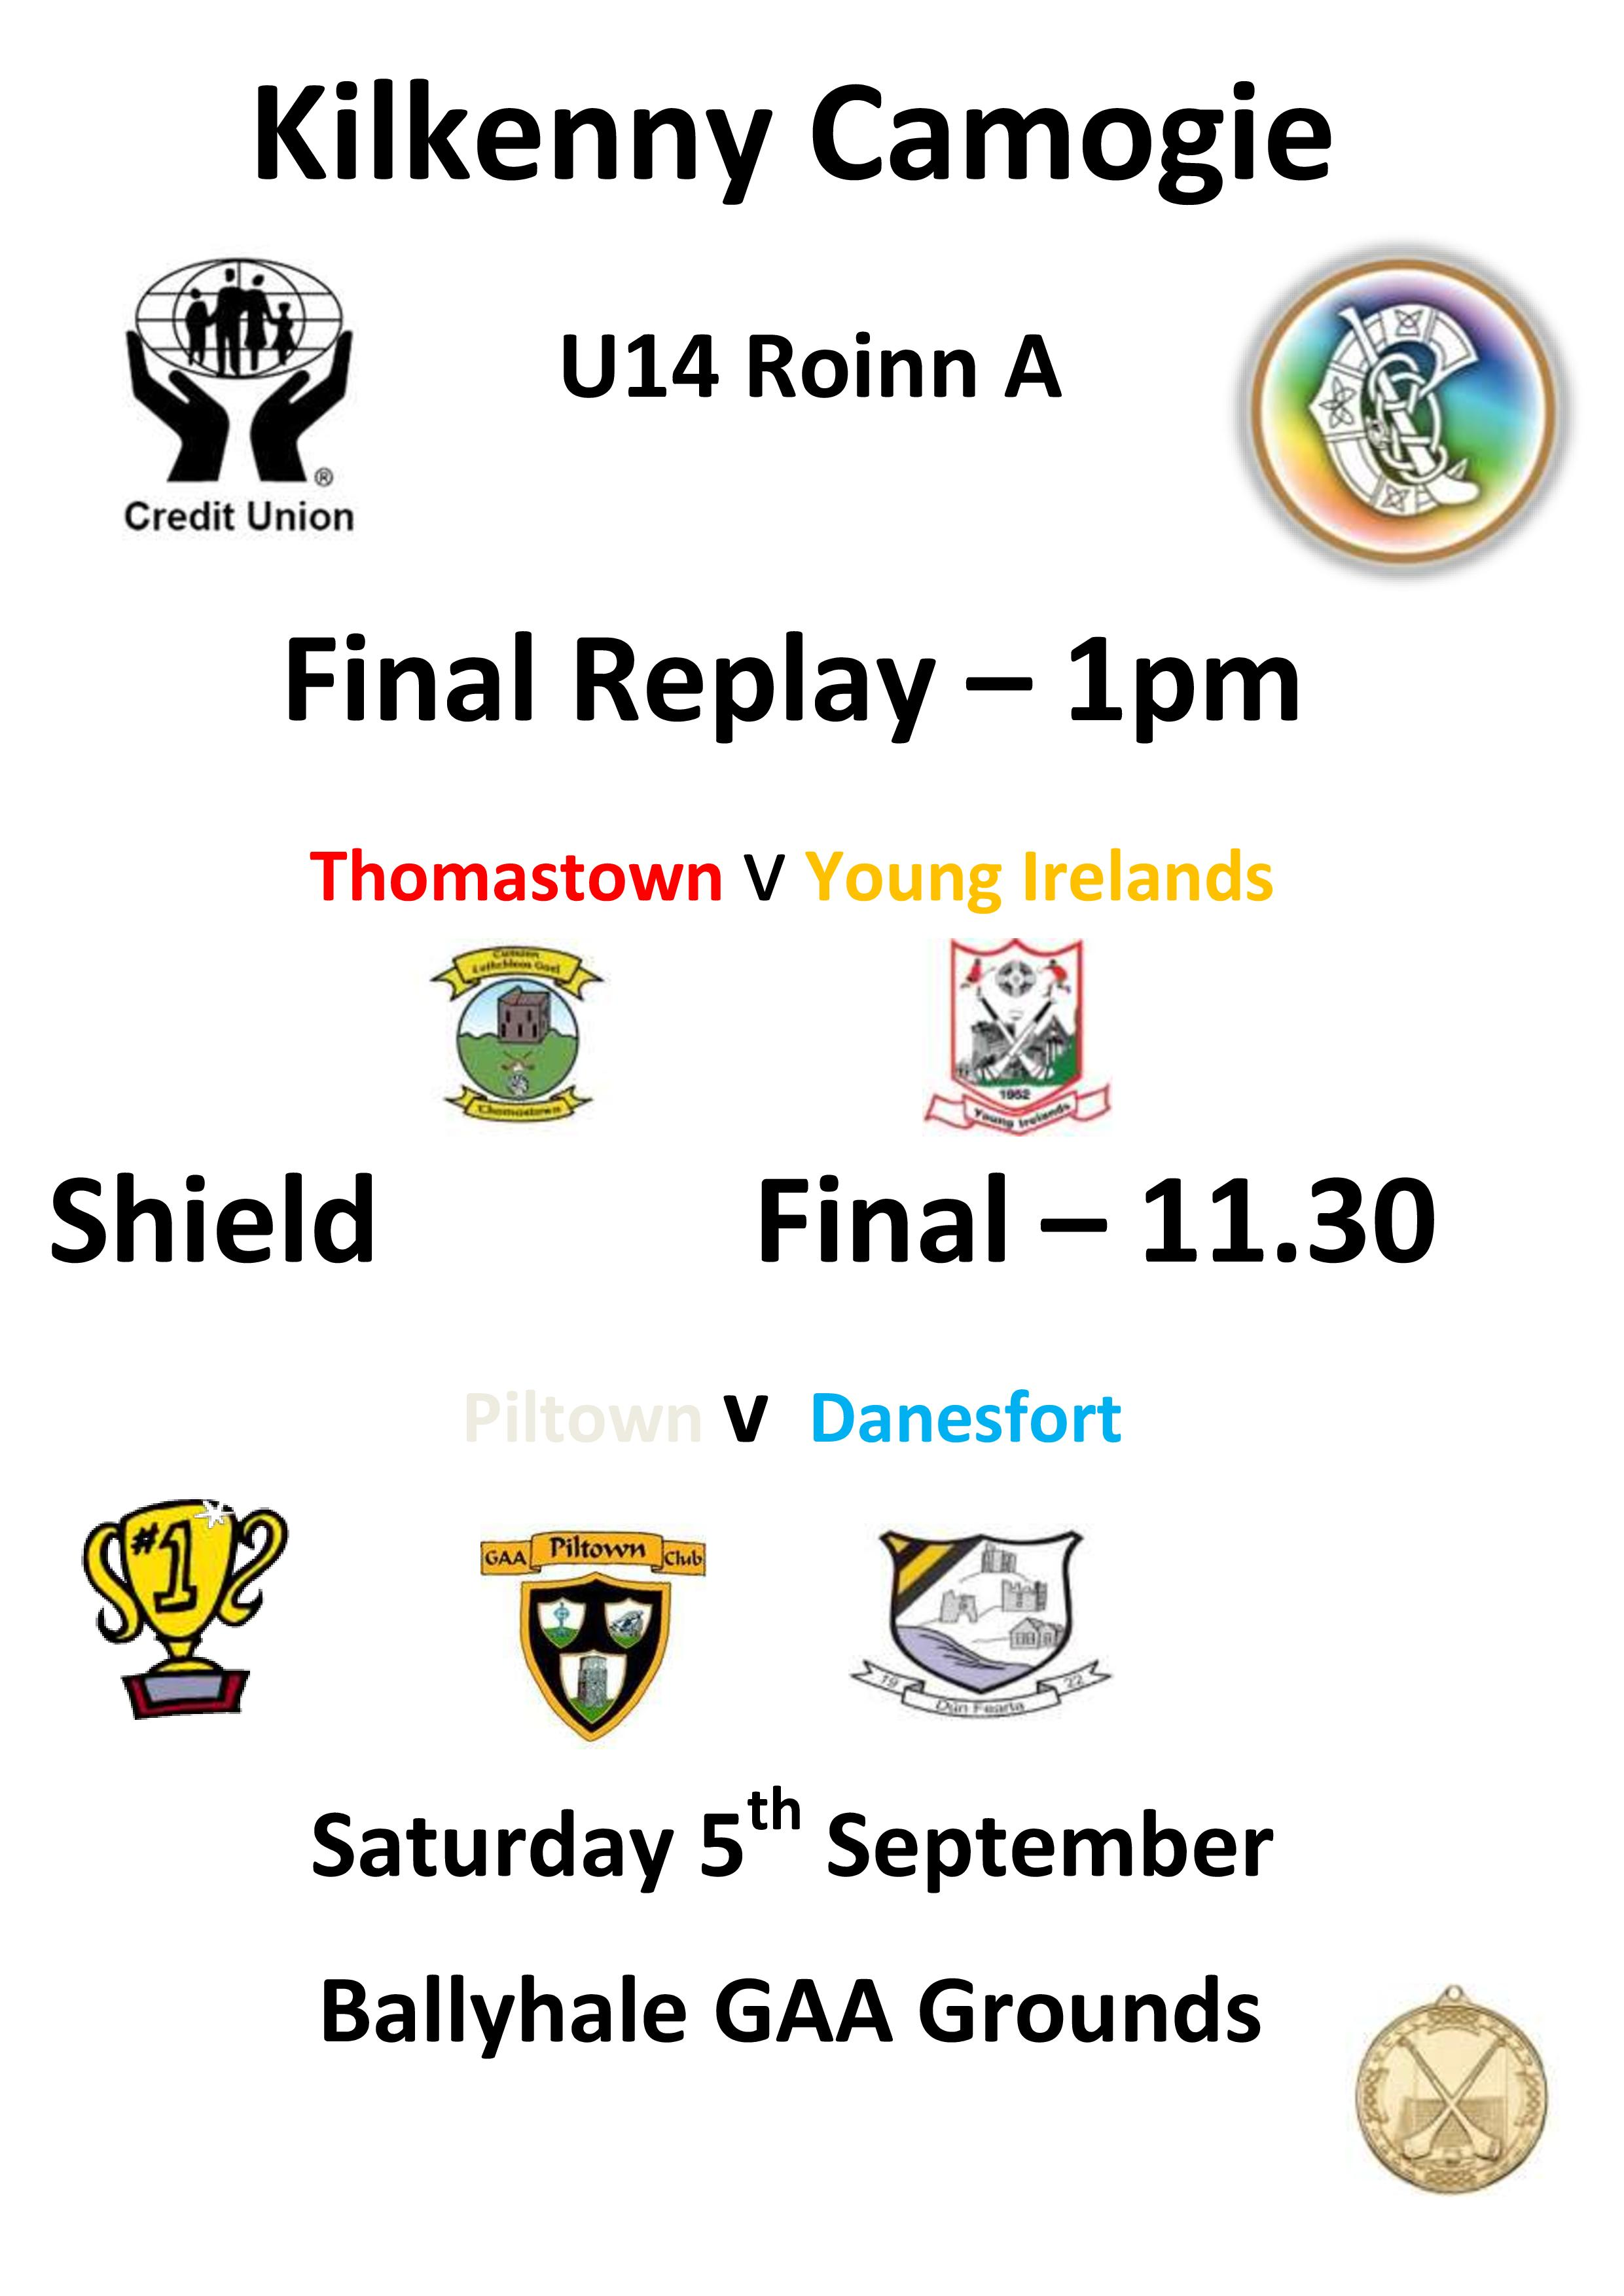 U14 Roinn A replay and shield-page-001